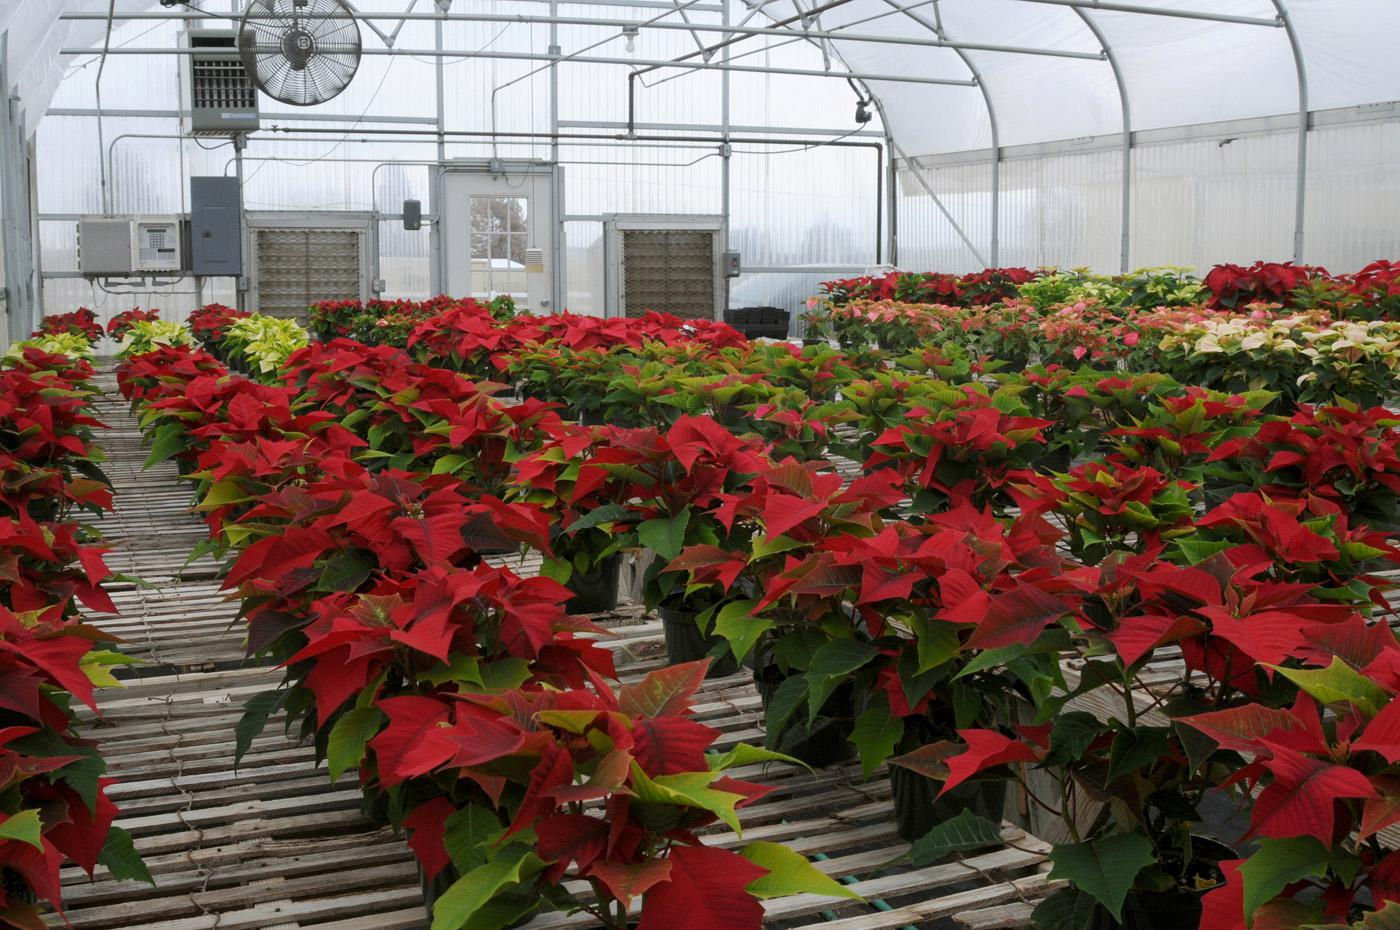 Thirty-two varieties of poinsettias in shades of red, pink and white are gaining more color each day as the Mississippi State University's annual holiday plant sale approaches. The event will be from 9 a.m. to 5 p.m. on Dec. 3 in the campus greenhouses behind Dorman Hall on Stone Boulevard. (Photo by Kat Lawrence)